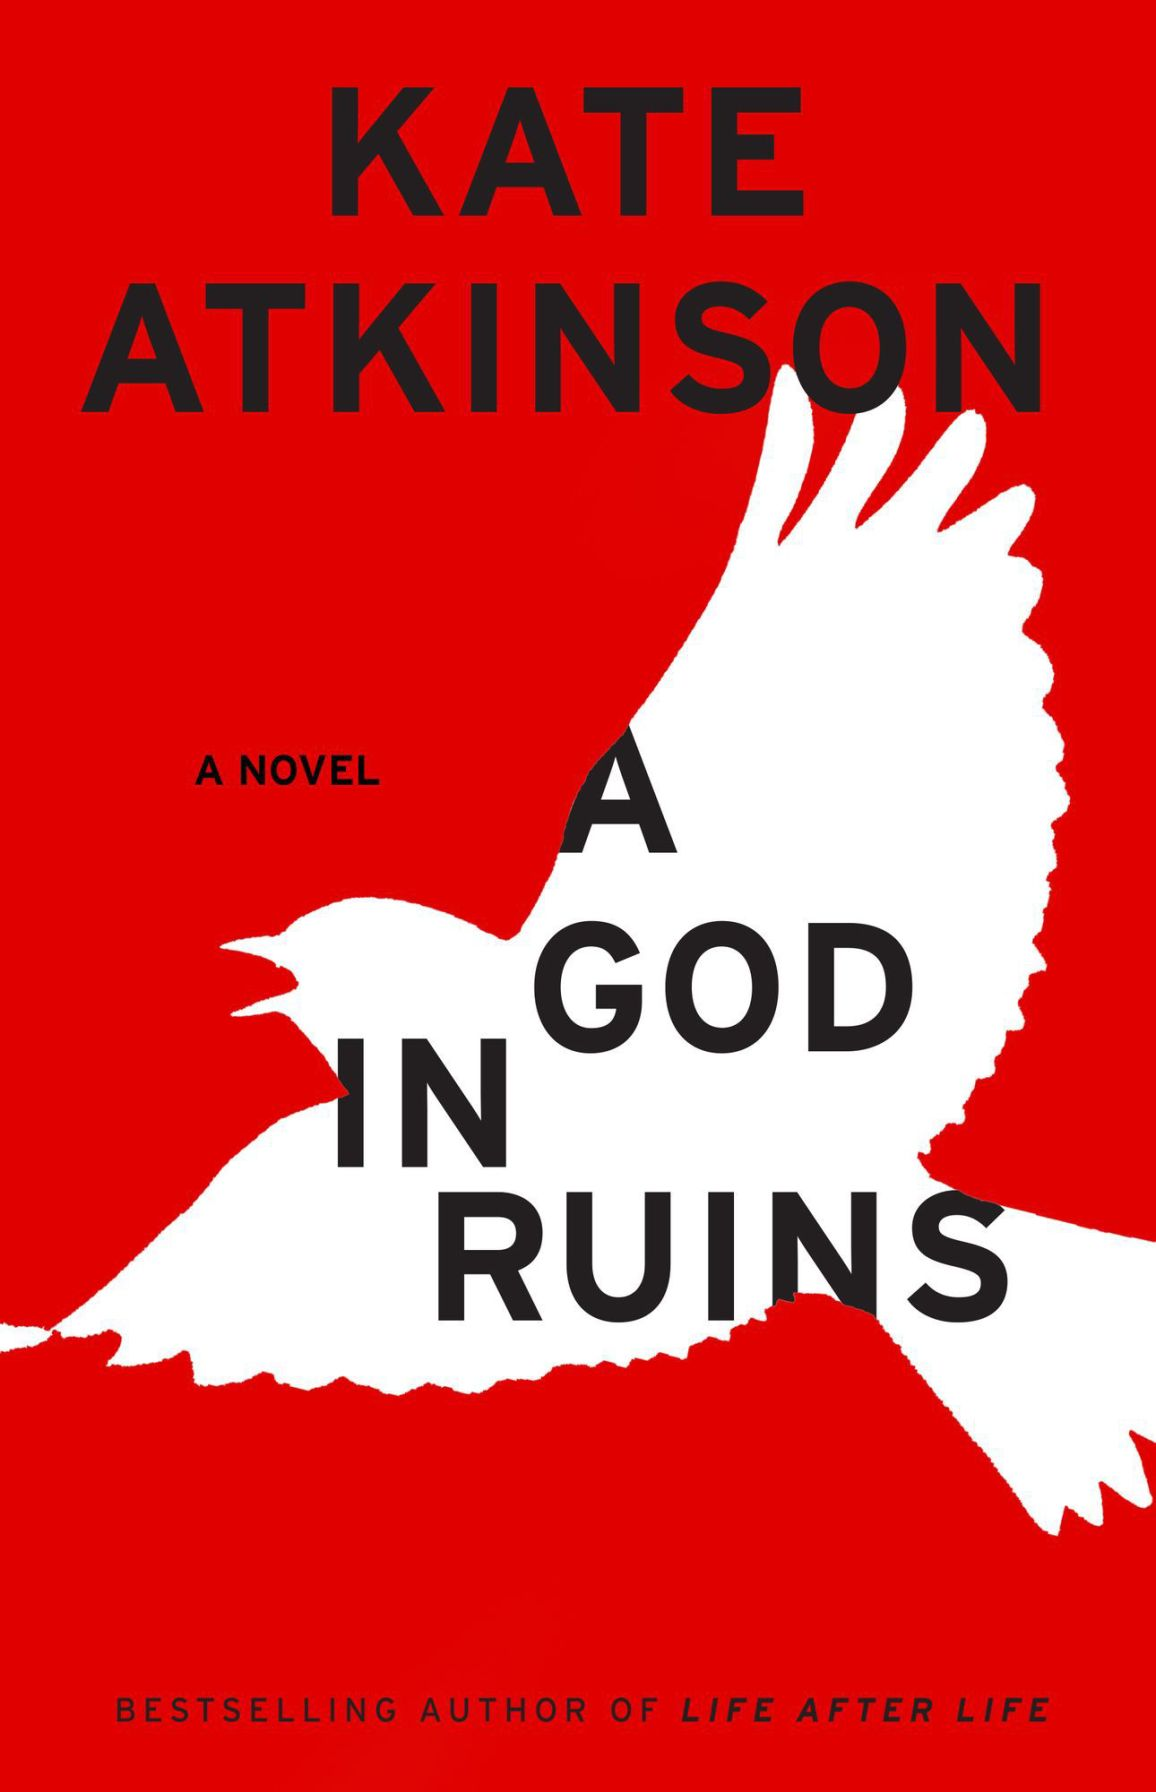 Review: Atkinson's 'God in Ruins' tracks an aviator's life, real and imagined